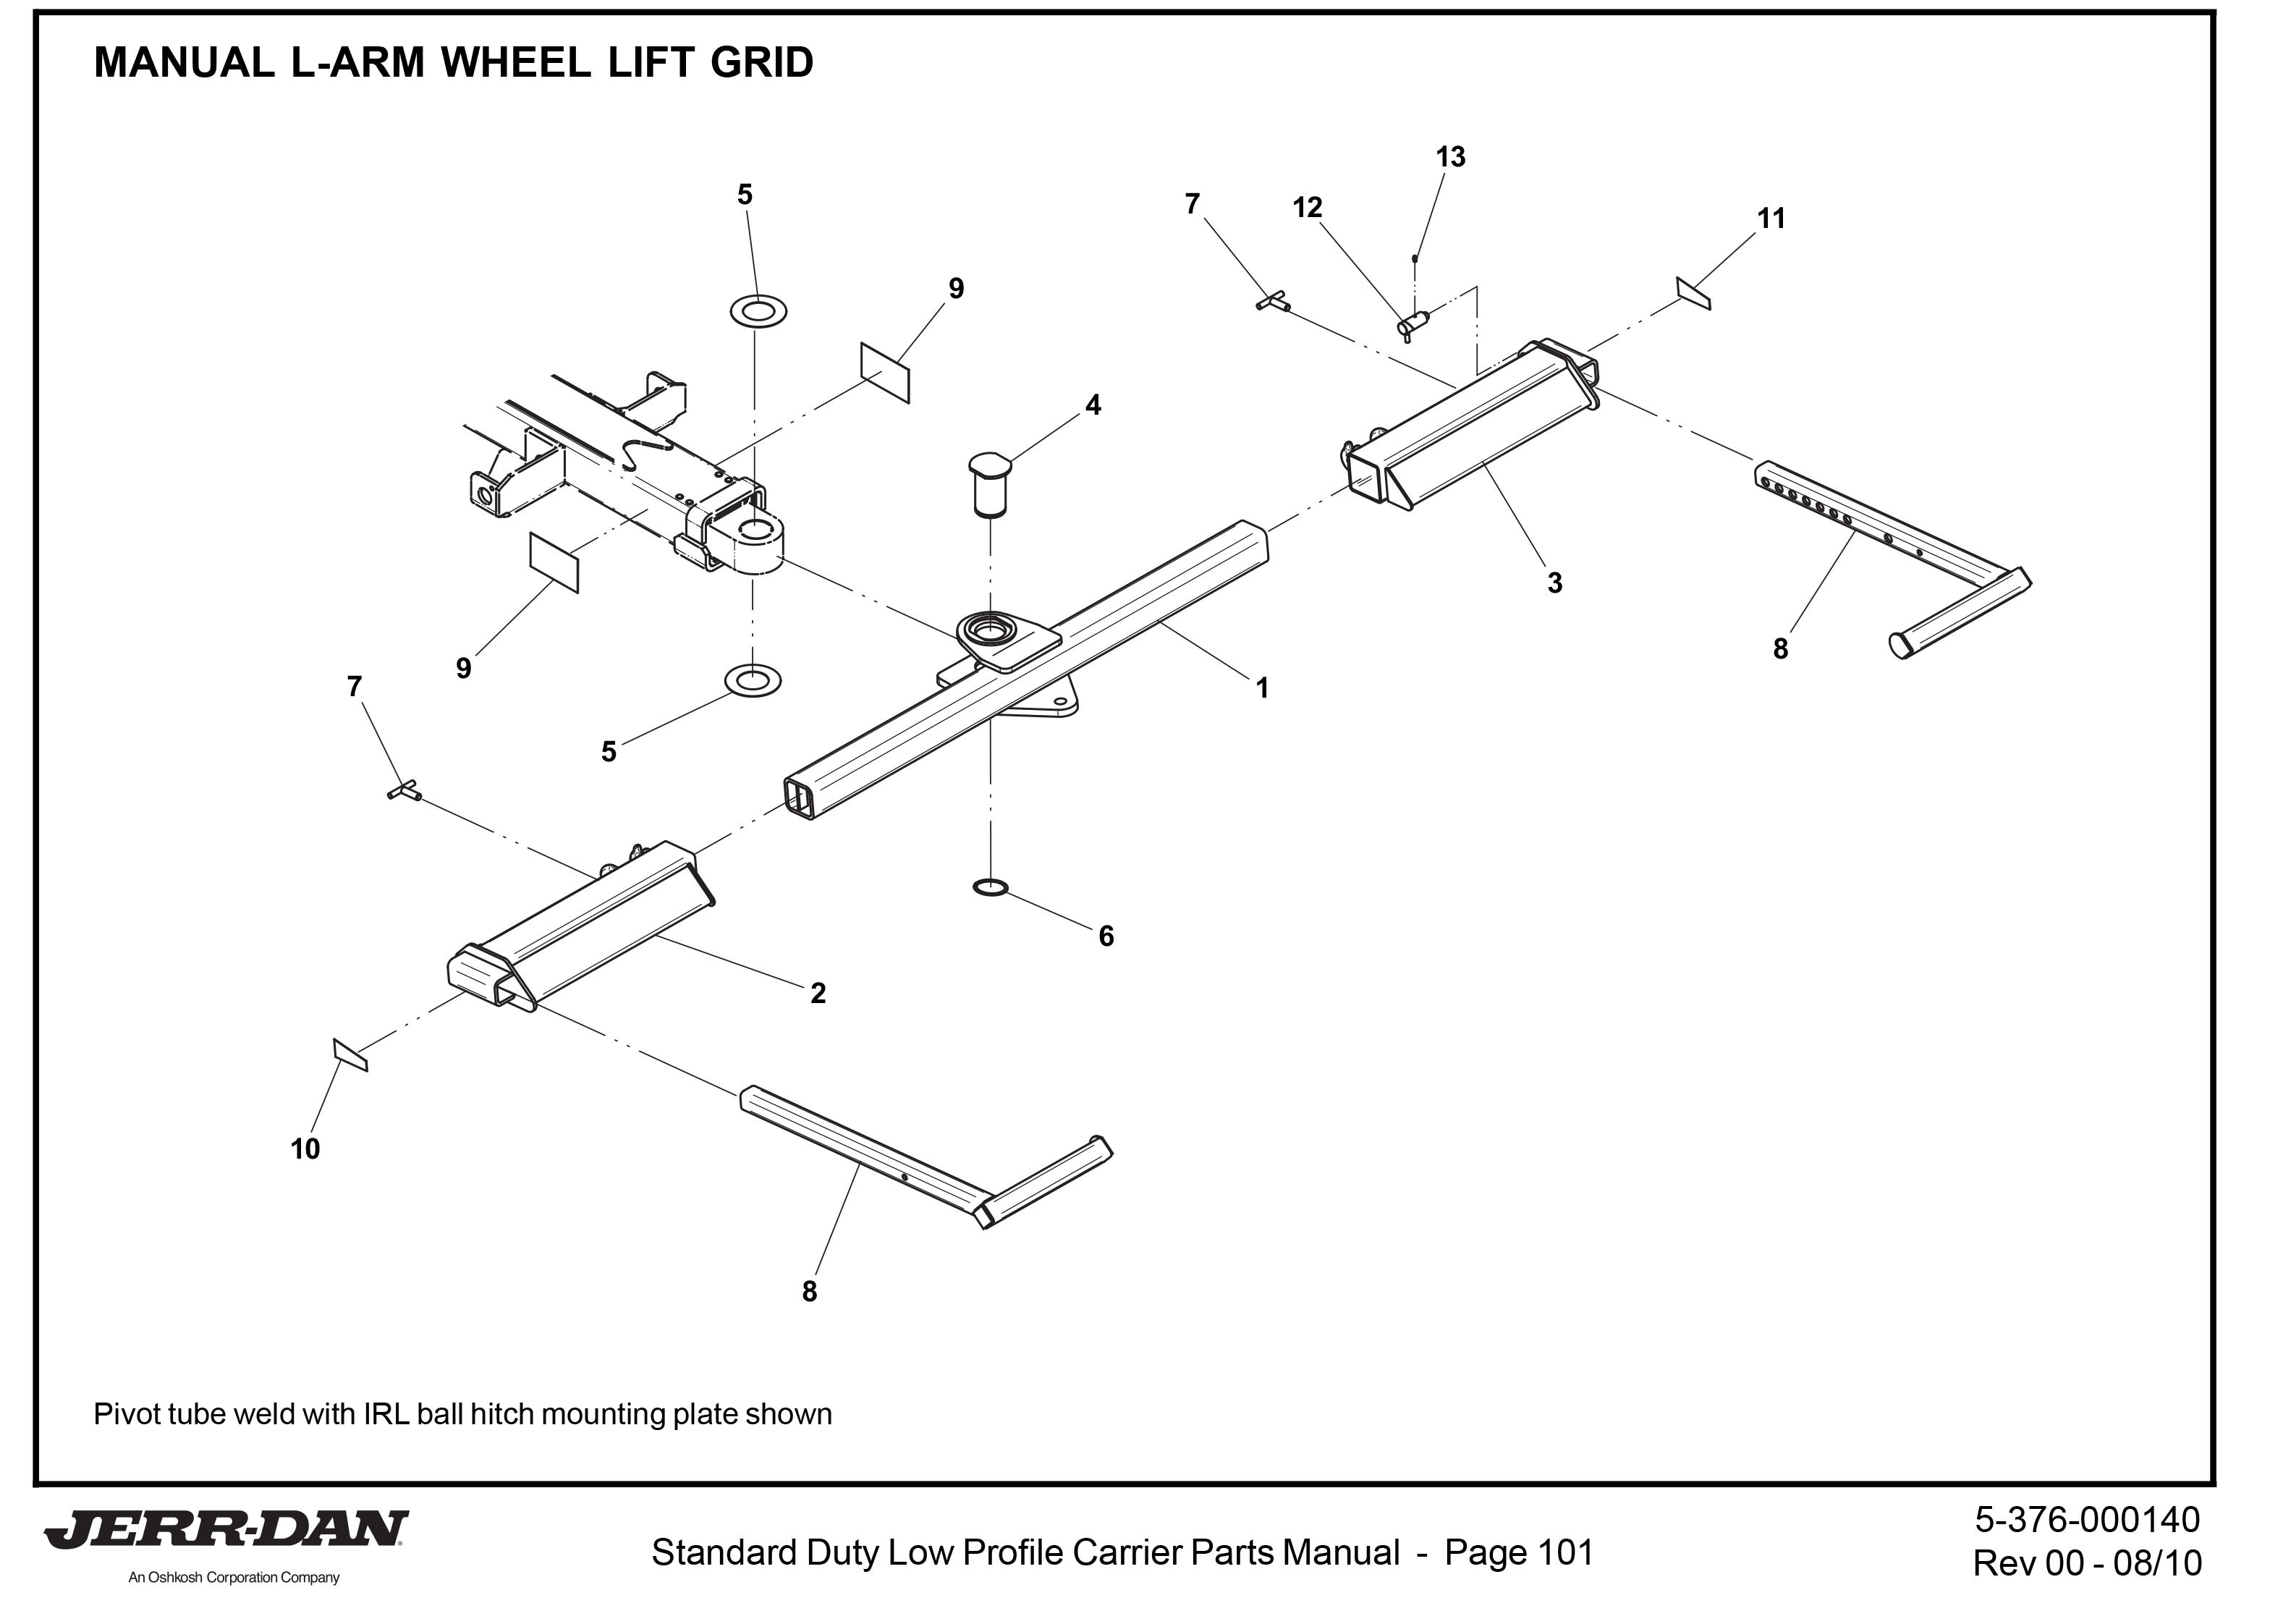 p 10787 Diagram 181 wheel lift l arms & wheel grids detroit wrecker sales dynamic wheel lift wiring diagram at fashall.co